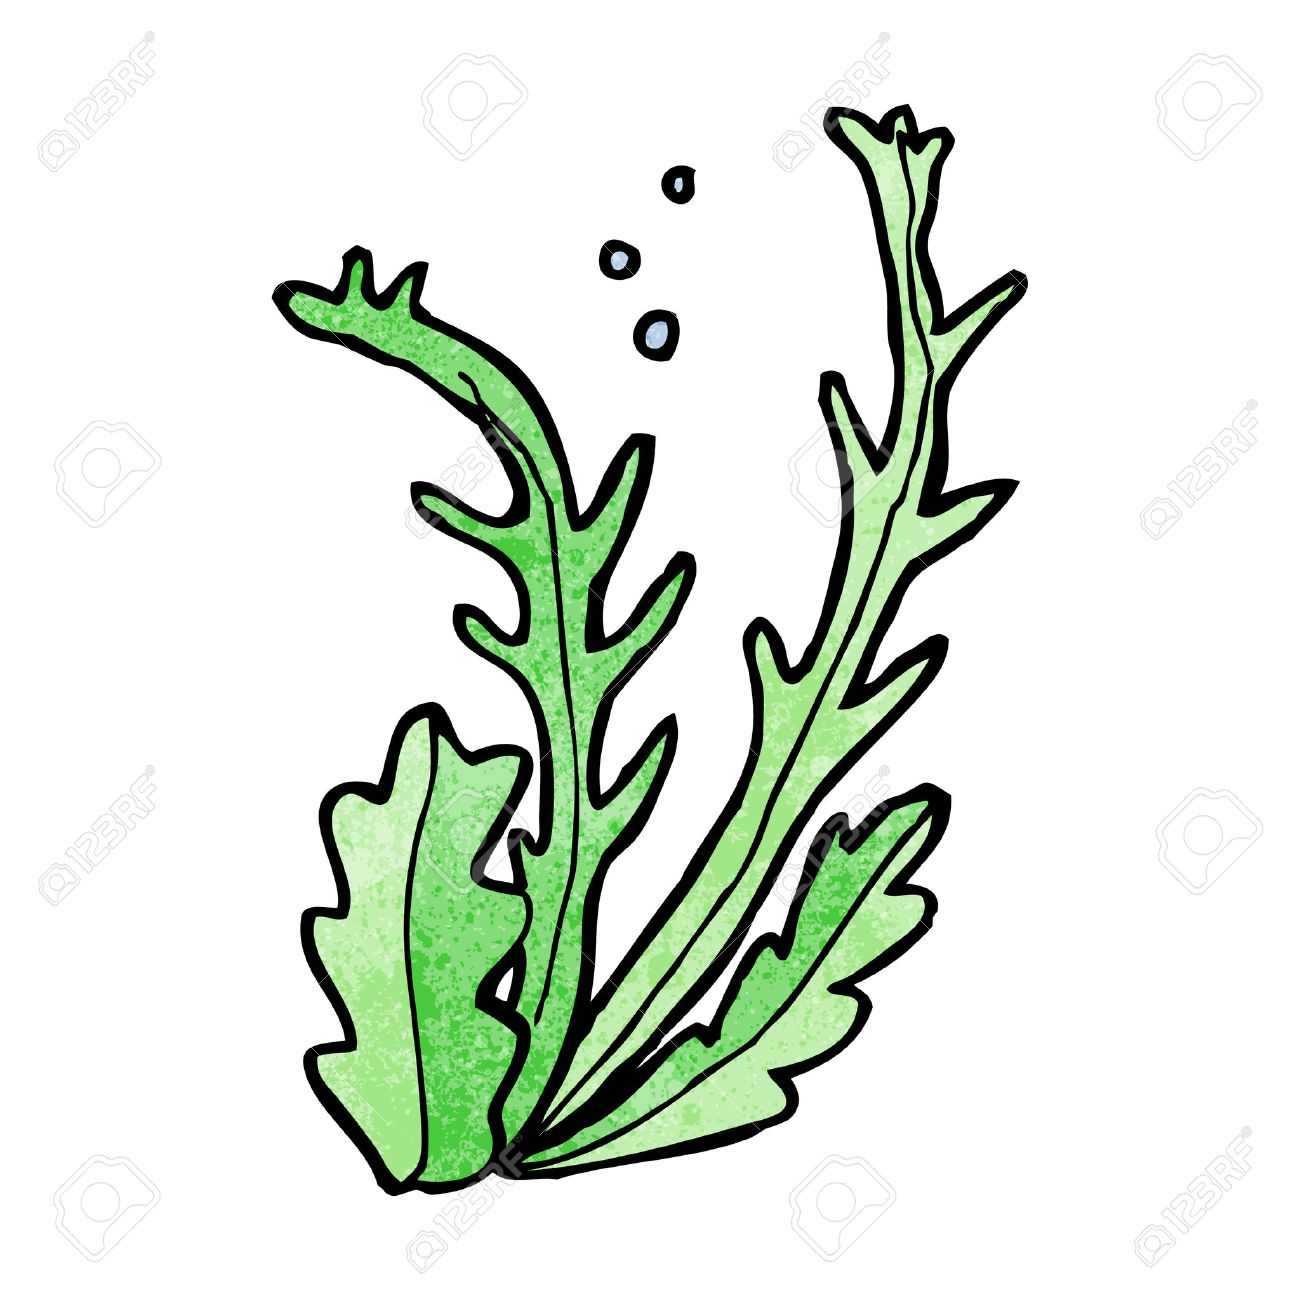 cartoon seaweed royalty free cliparts vectors and stock rh 123rf com seaweed clipart images seaweed clip art images